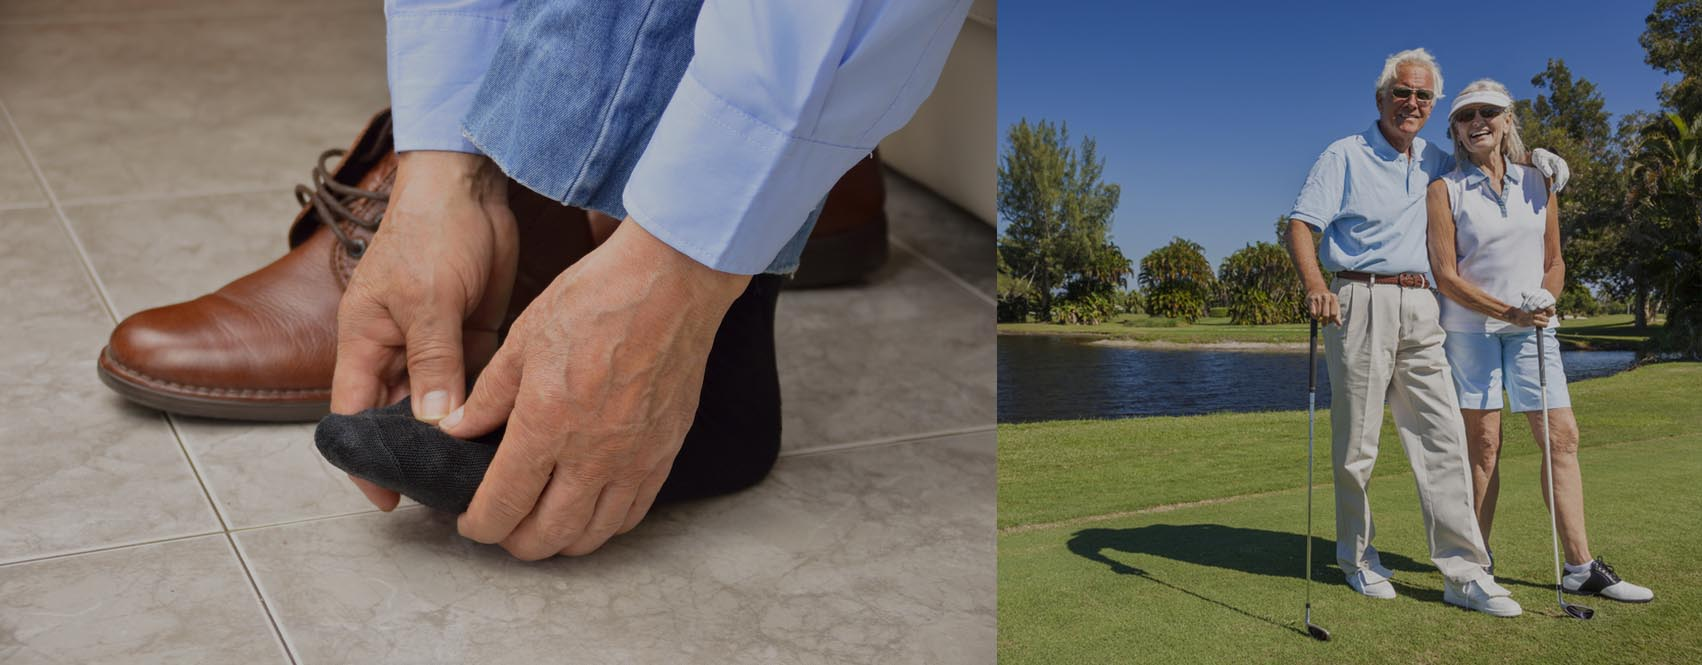 Get Foot Pain Relief with Orthotics